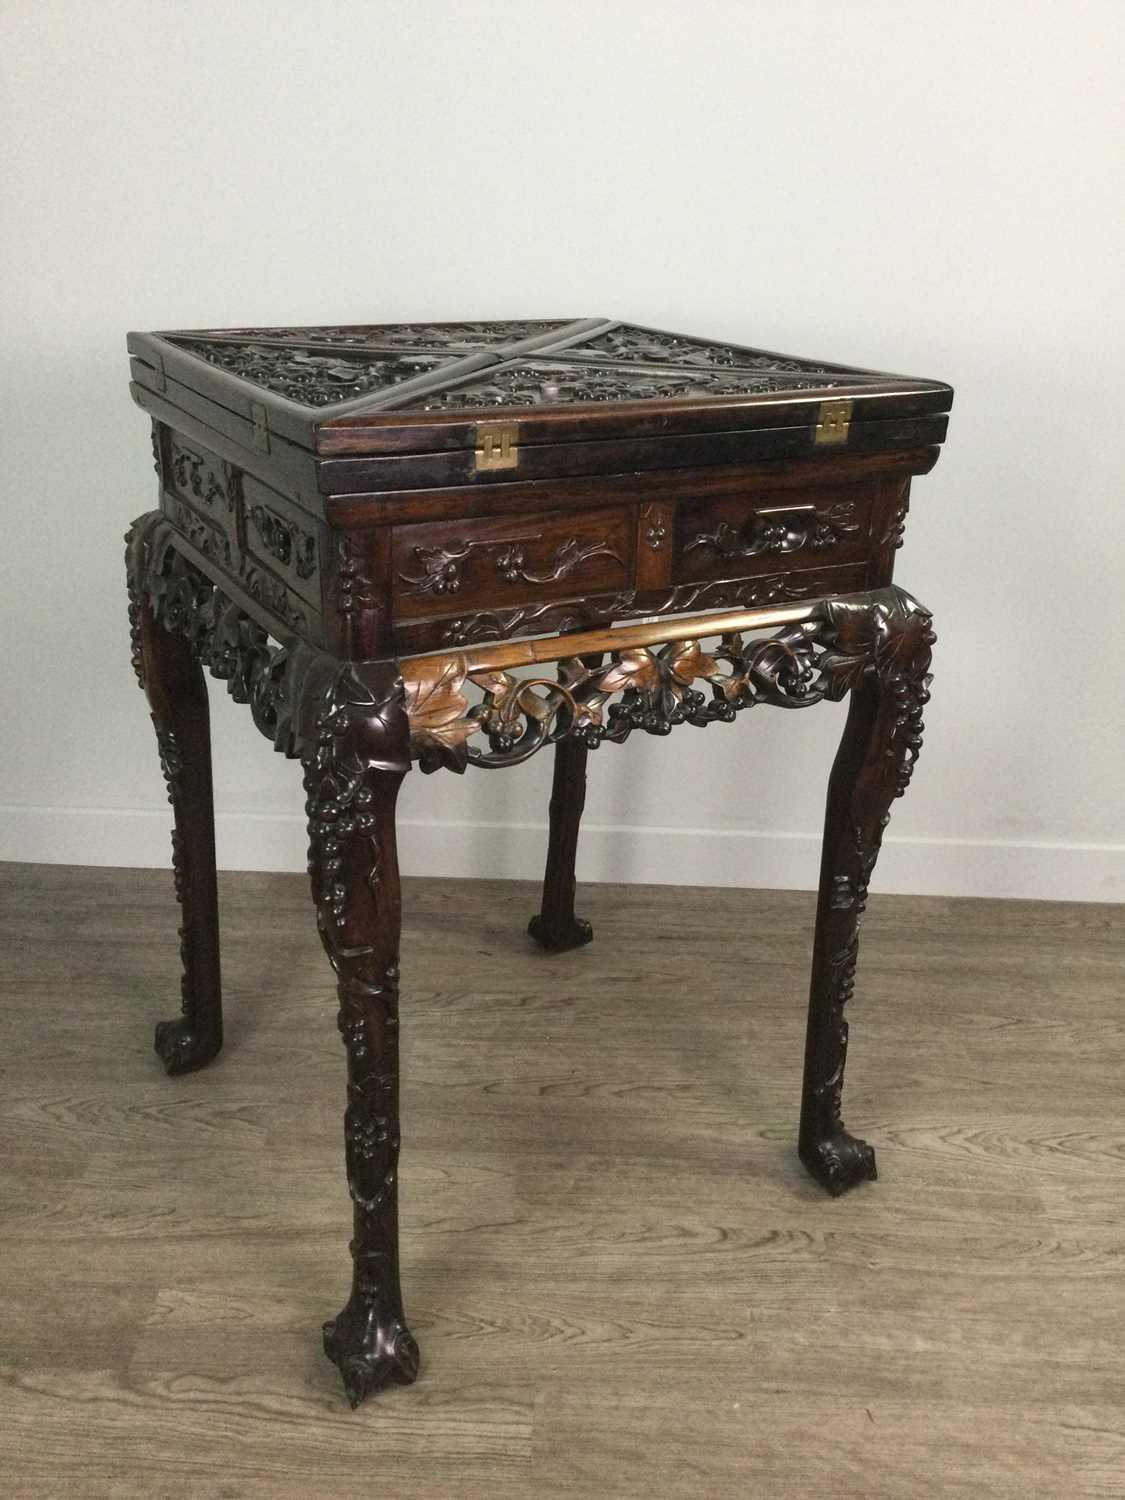 Lot 755 - A CHINESE ENVELOPE CARD TABLE